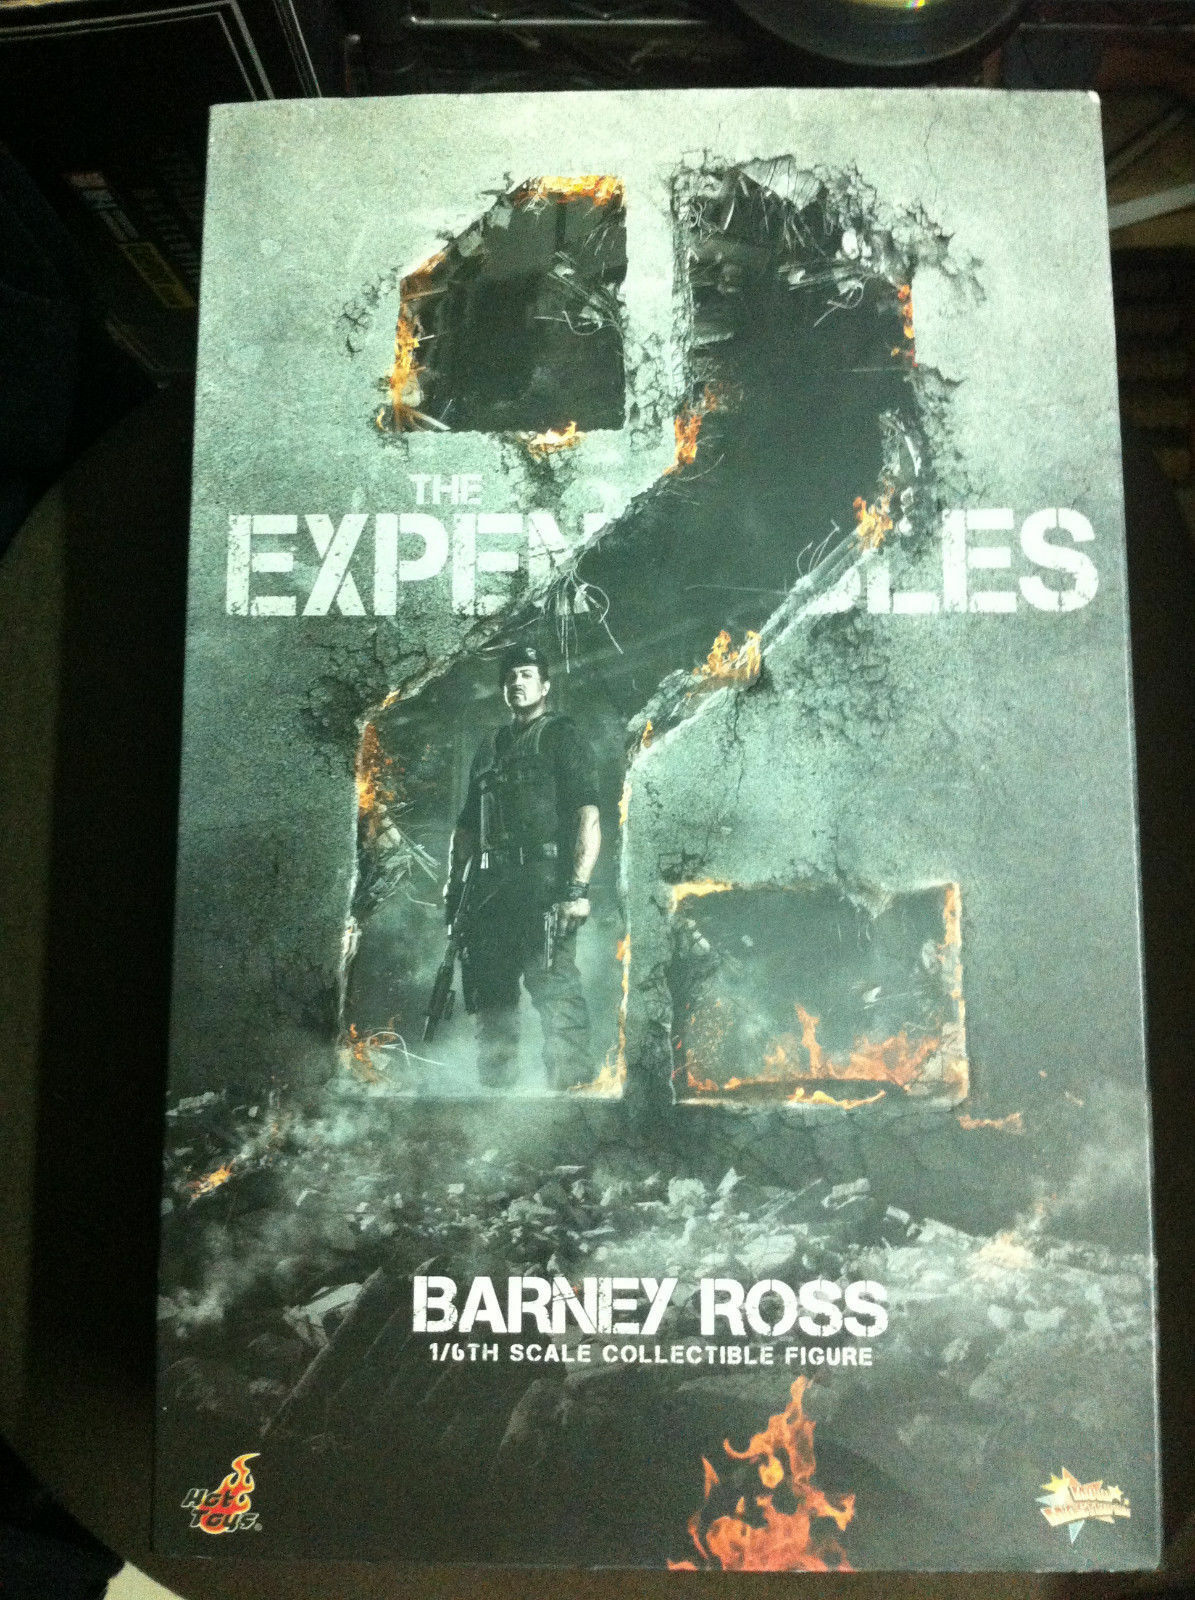 Hot Toys hottoys Expendables Barney Ross 1 6 Action Figure MMS194 Empty Box